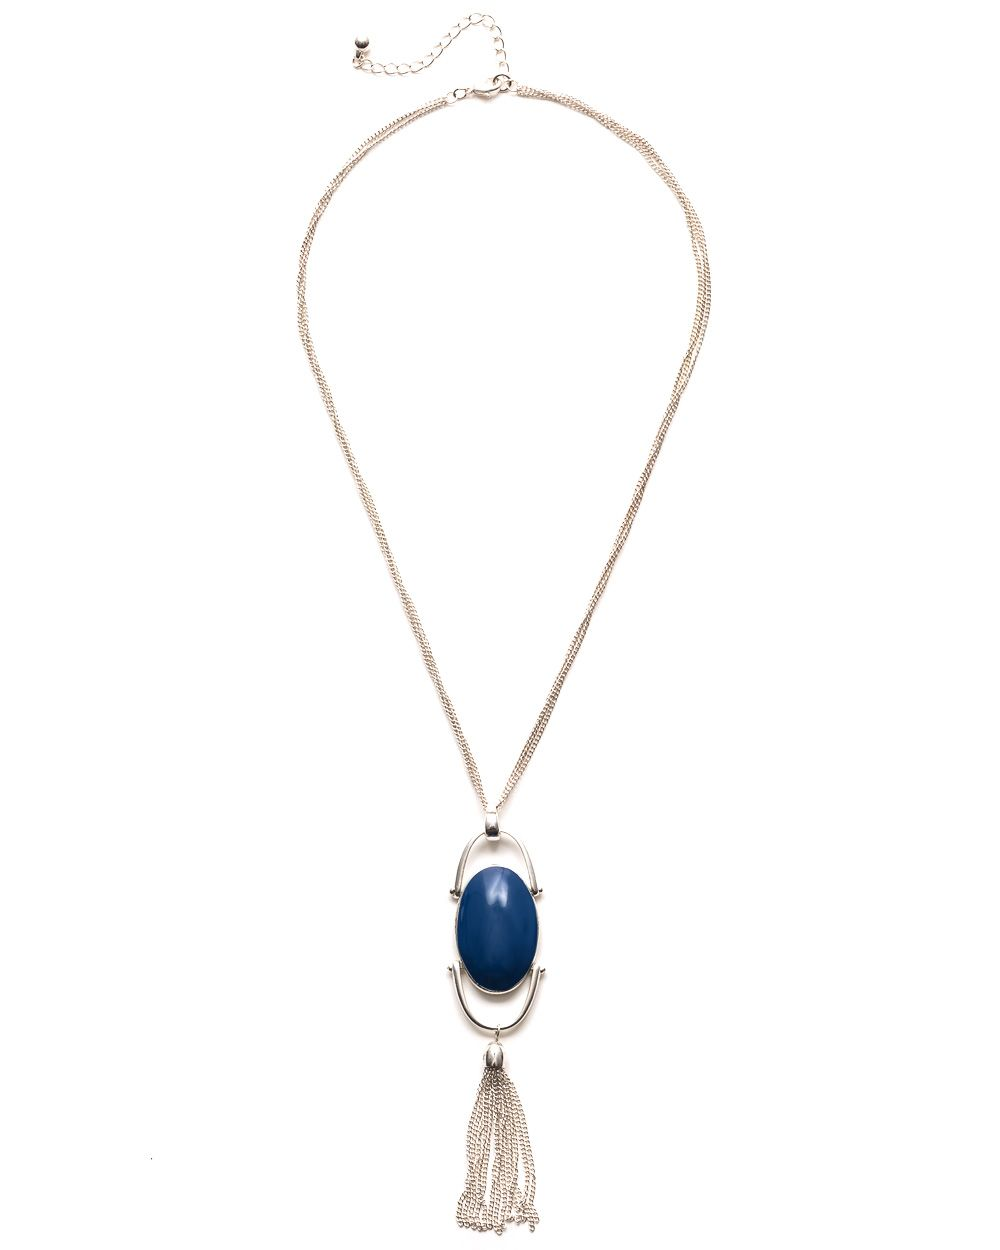 Azure pendant necklace